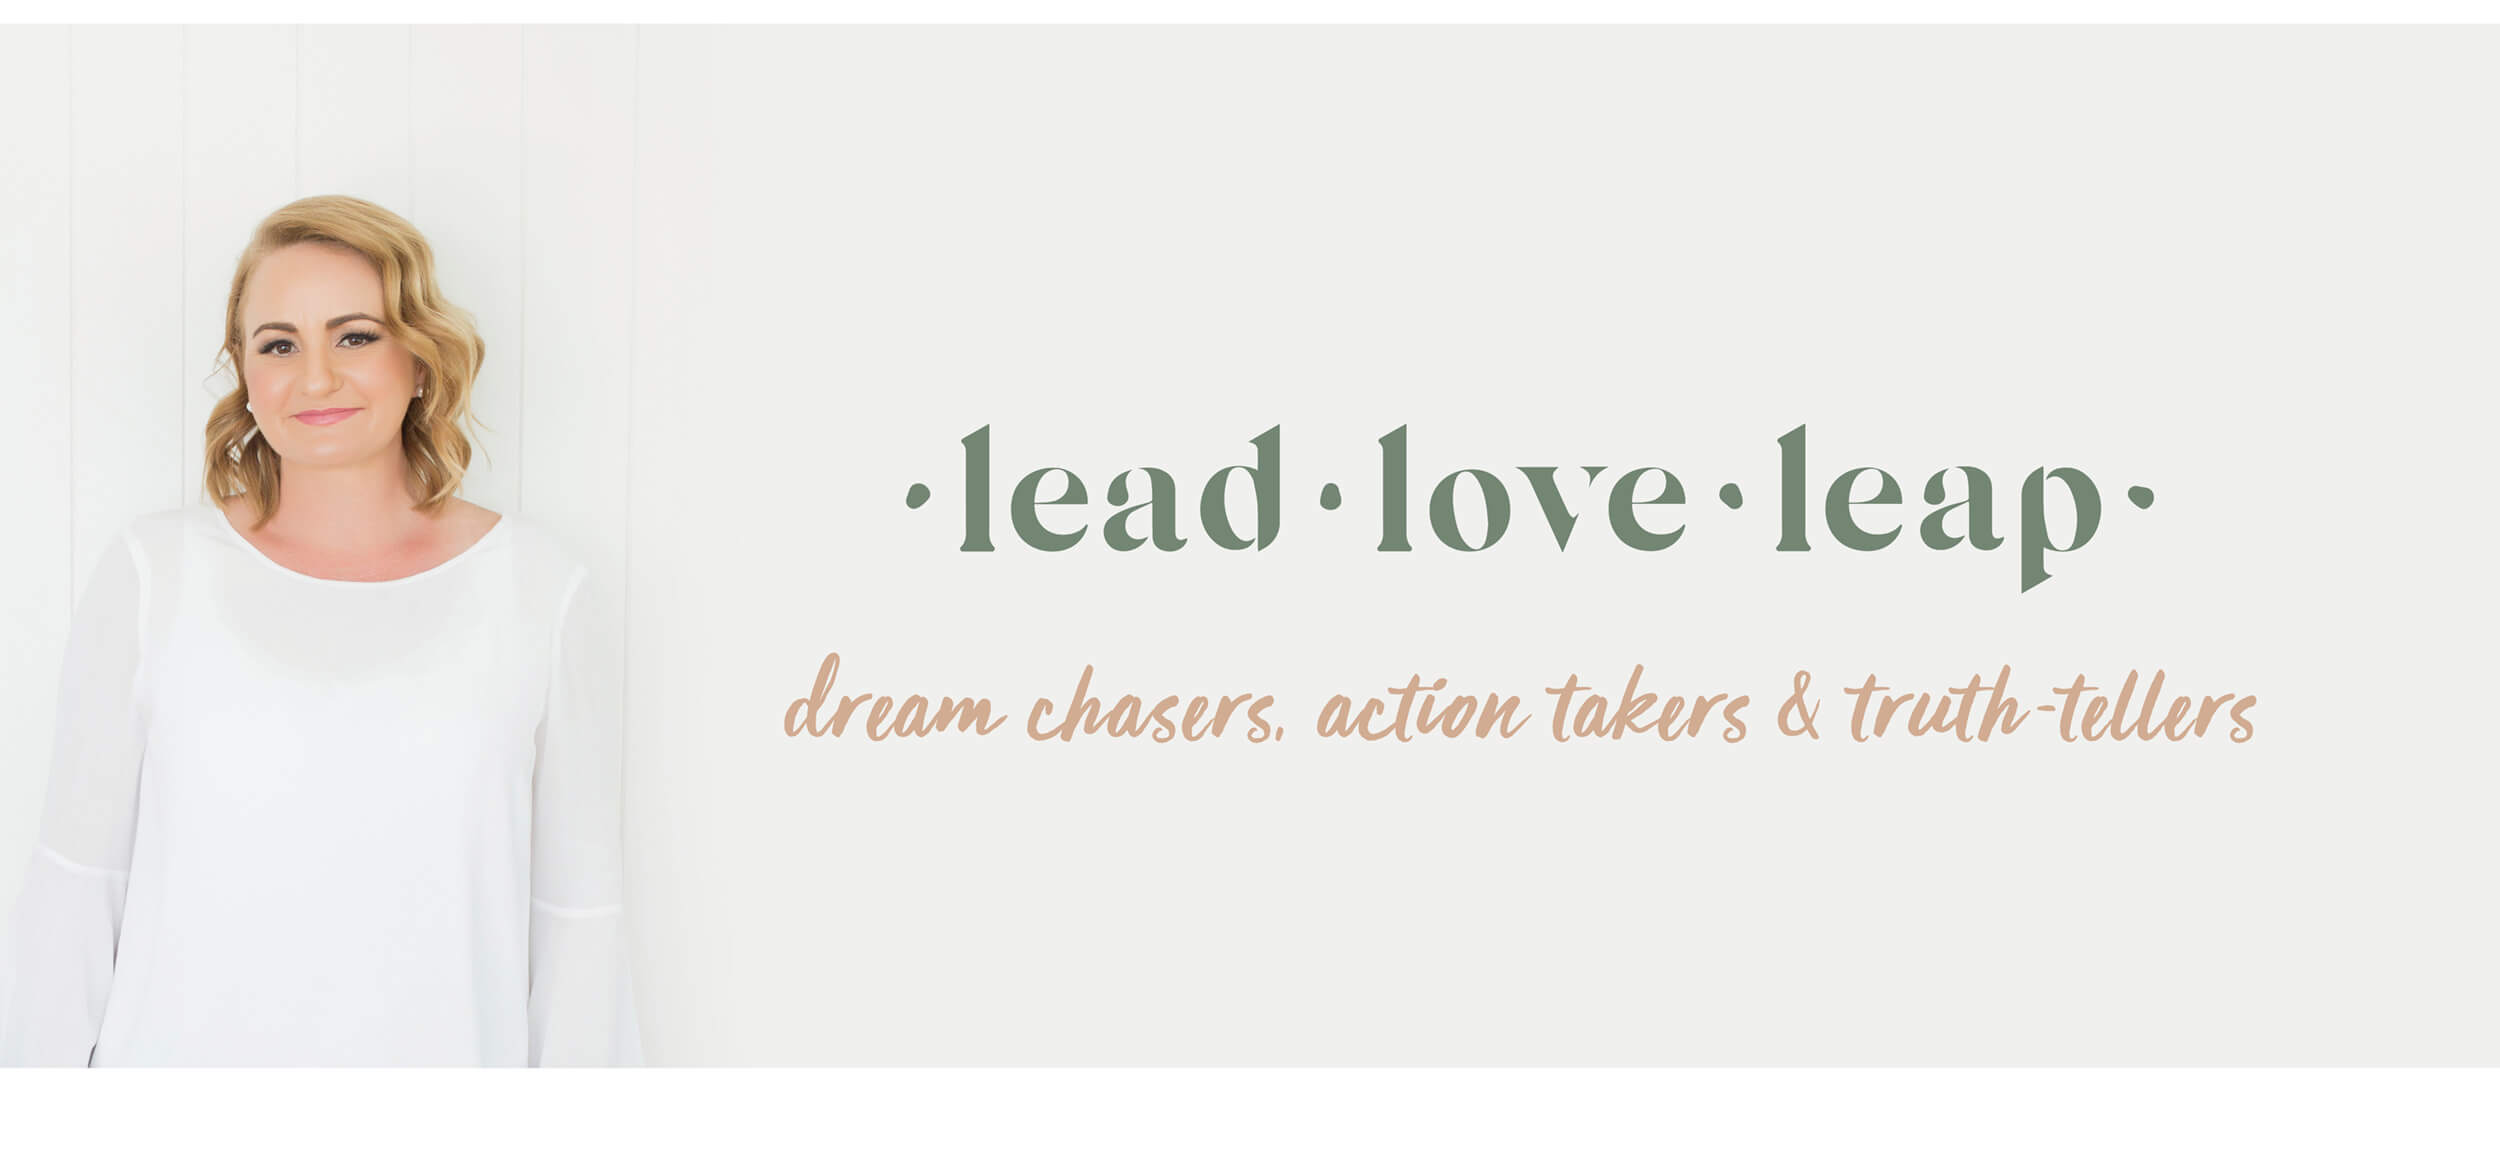 Verve Design Website Portfolio Lead Love Leap